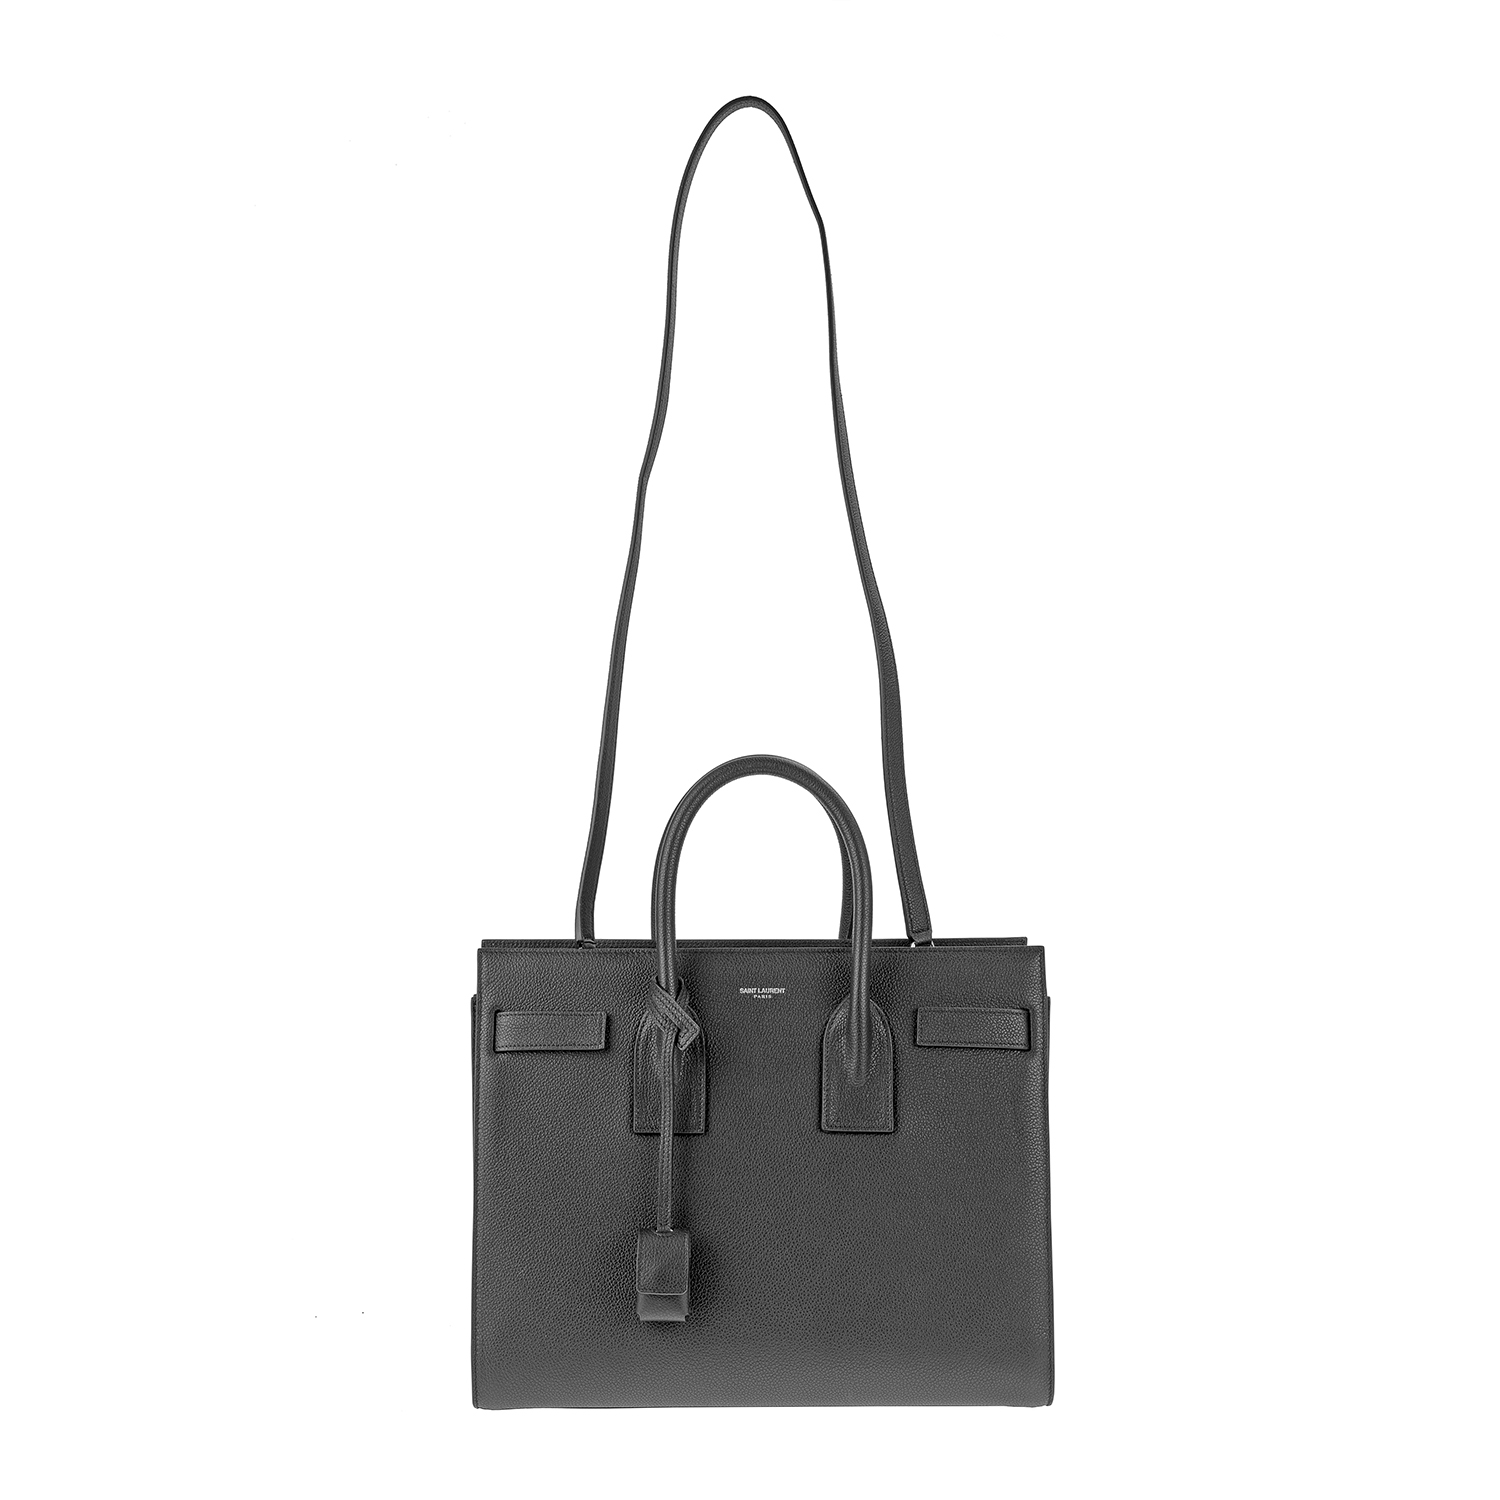 Handbag for rent Yves Saint Laurent Sac De Jour